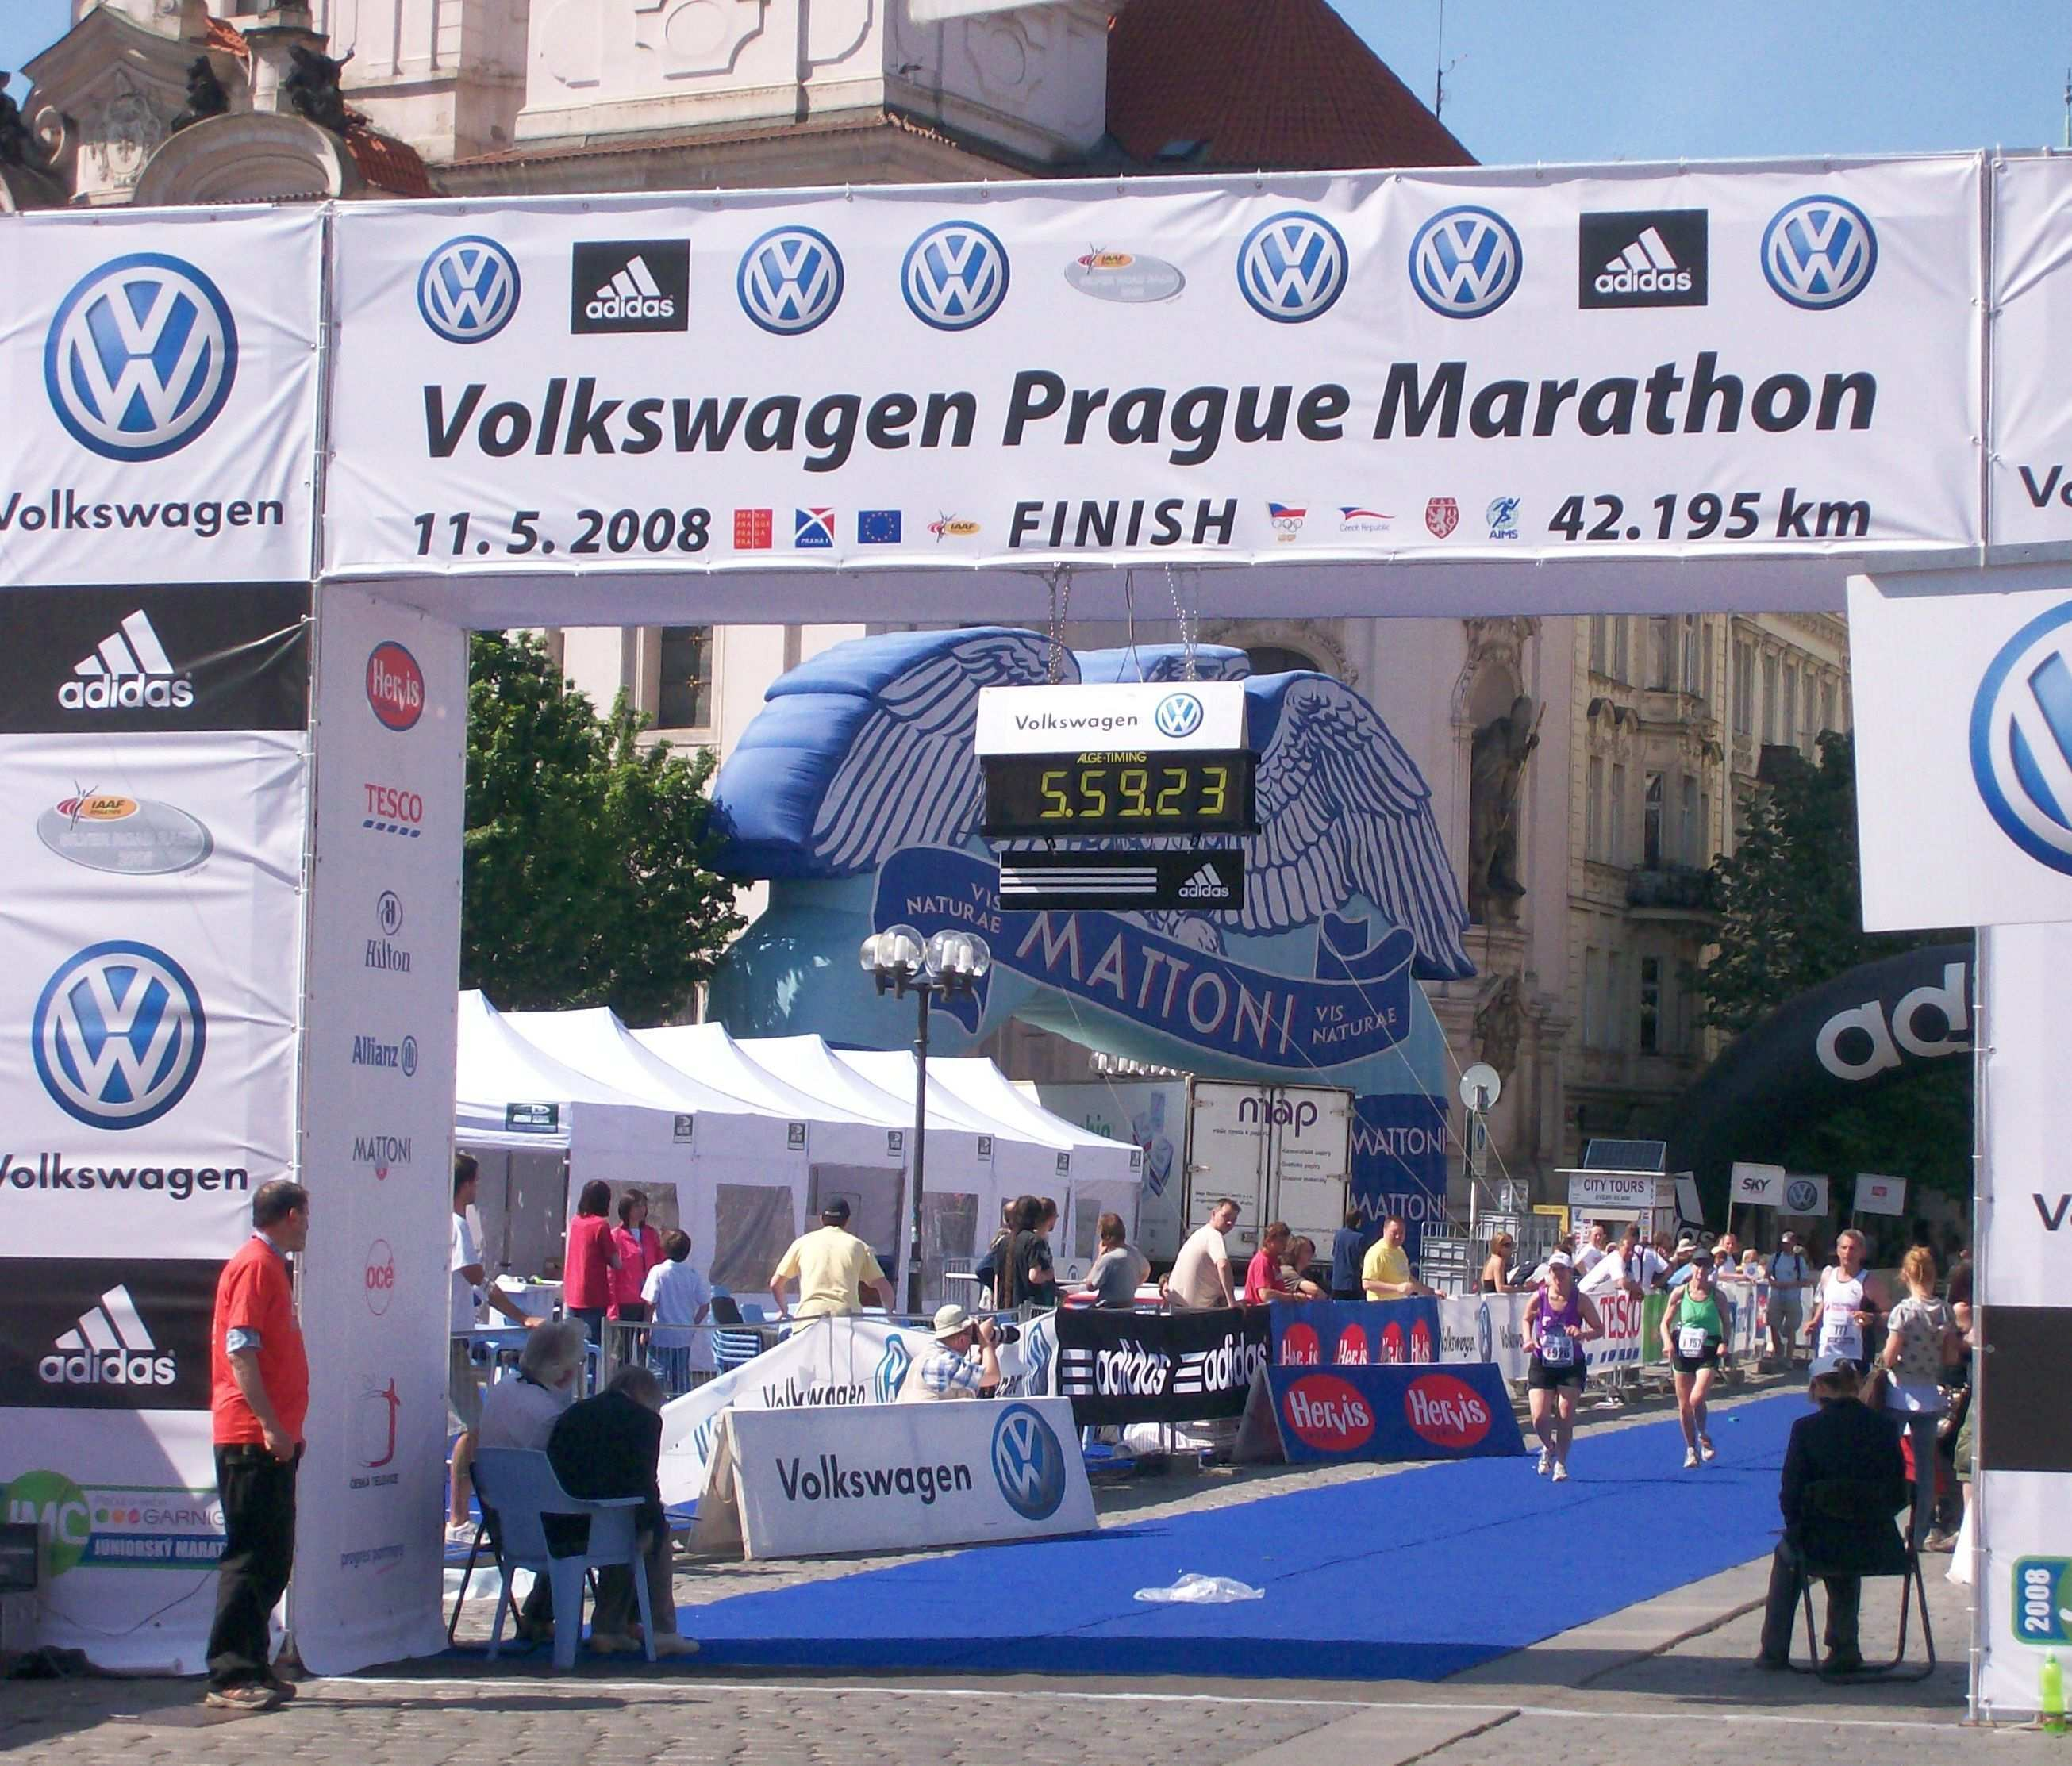 95 Concept of Volkswagen Prague Marathon 2019 Rumors by Volkswagen Prague Marathon 2019